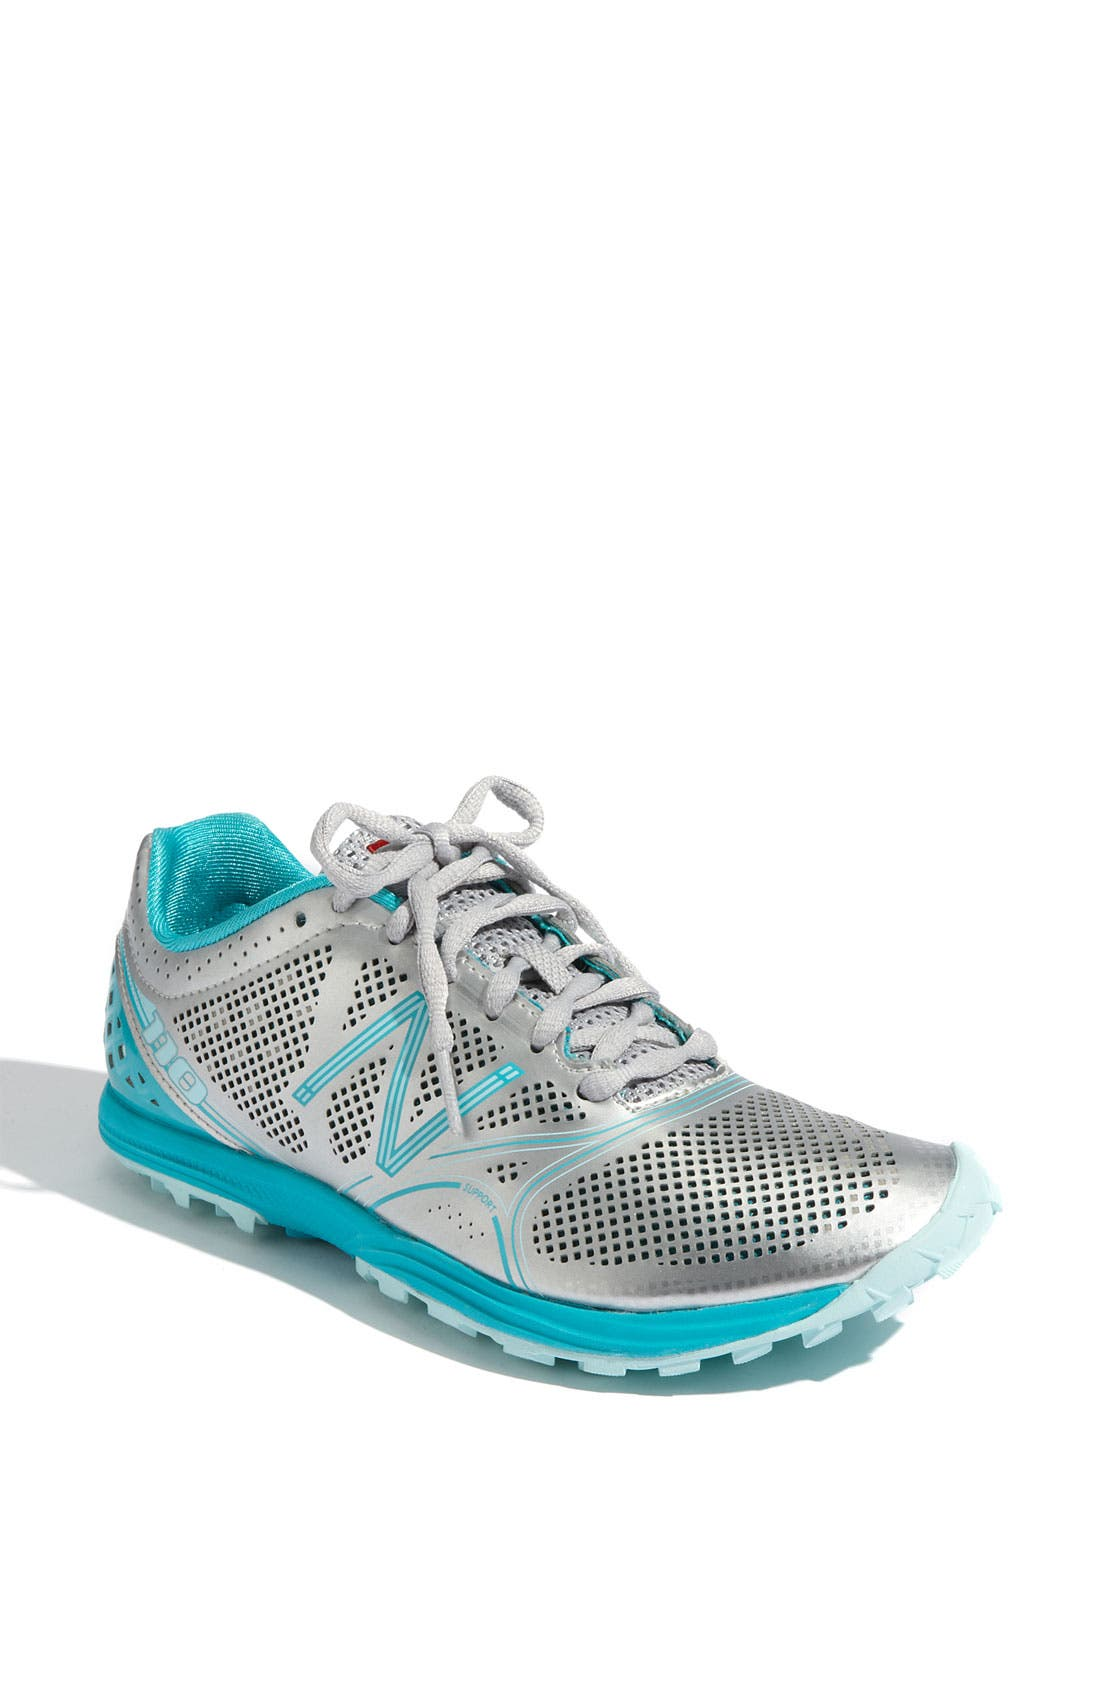 Alternate Image 1 Selected - New Balance '110' Trail Running Shoe (Women)